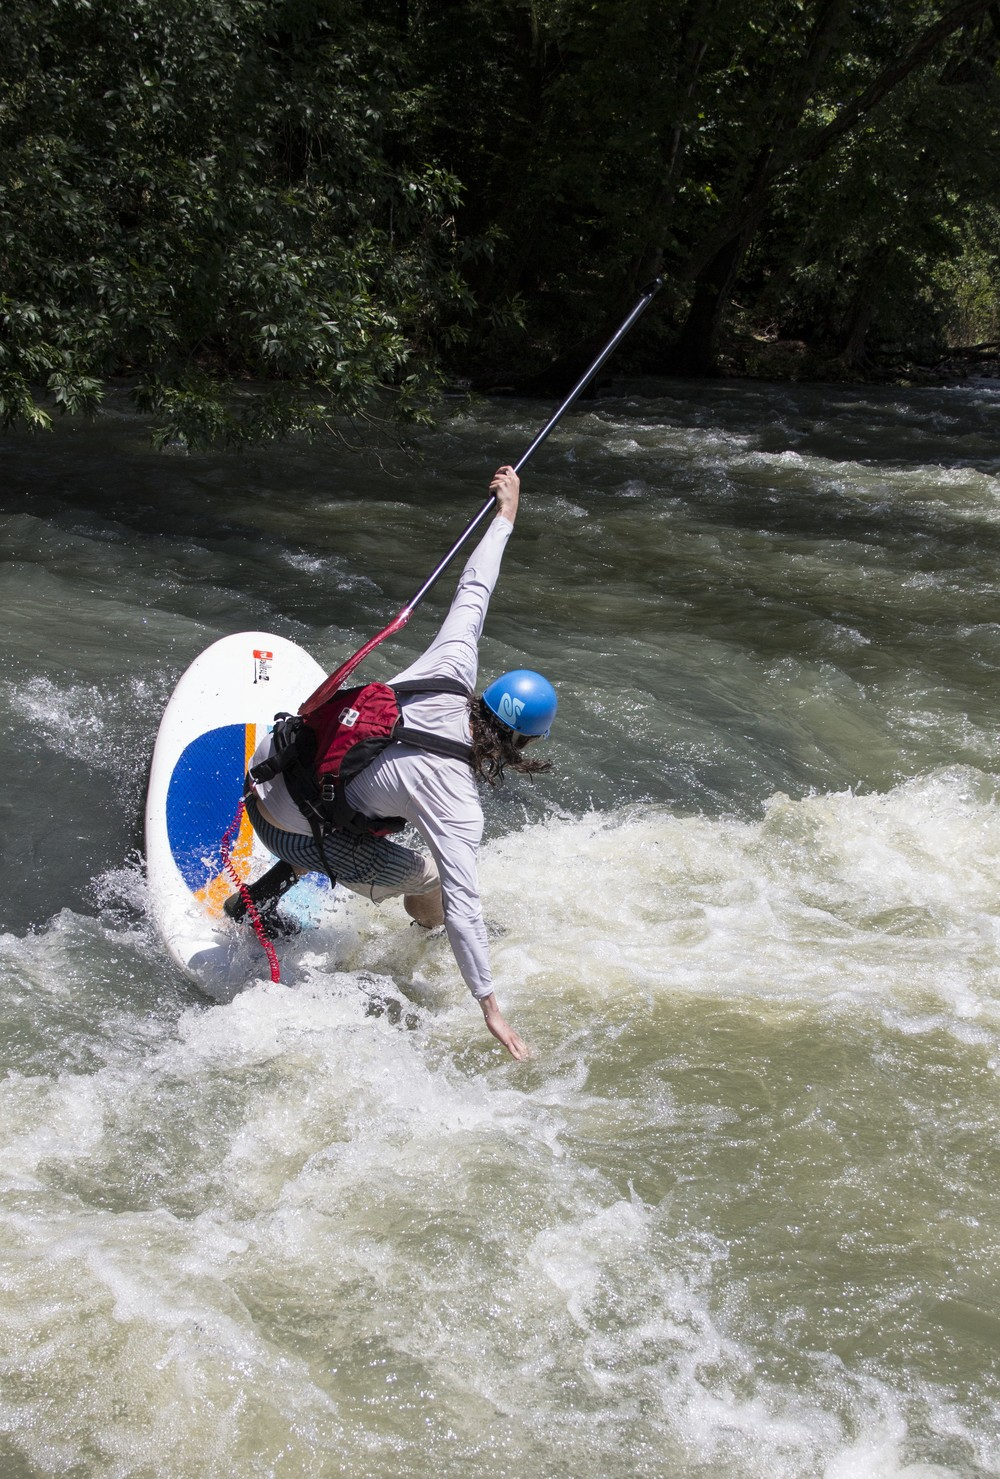 Arkansas' whitewater rivers like the Frog Bayou near Rudy make for a thrilling SUP ride.